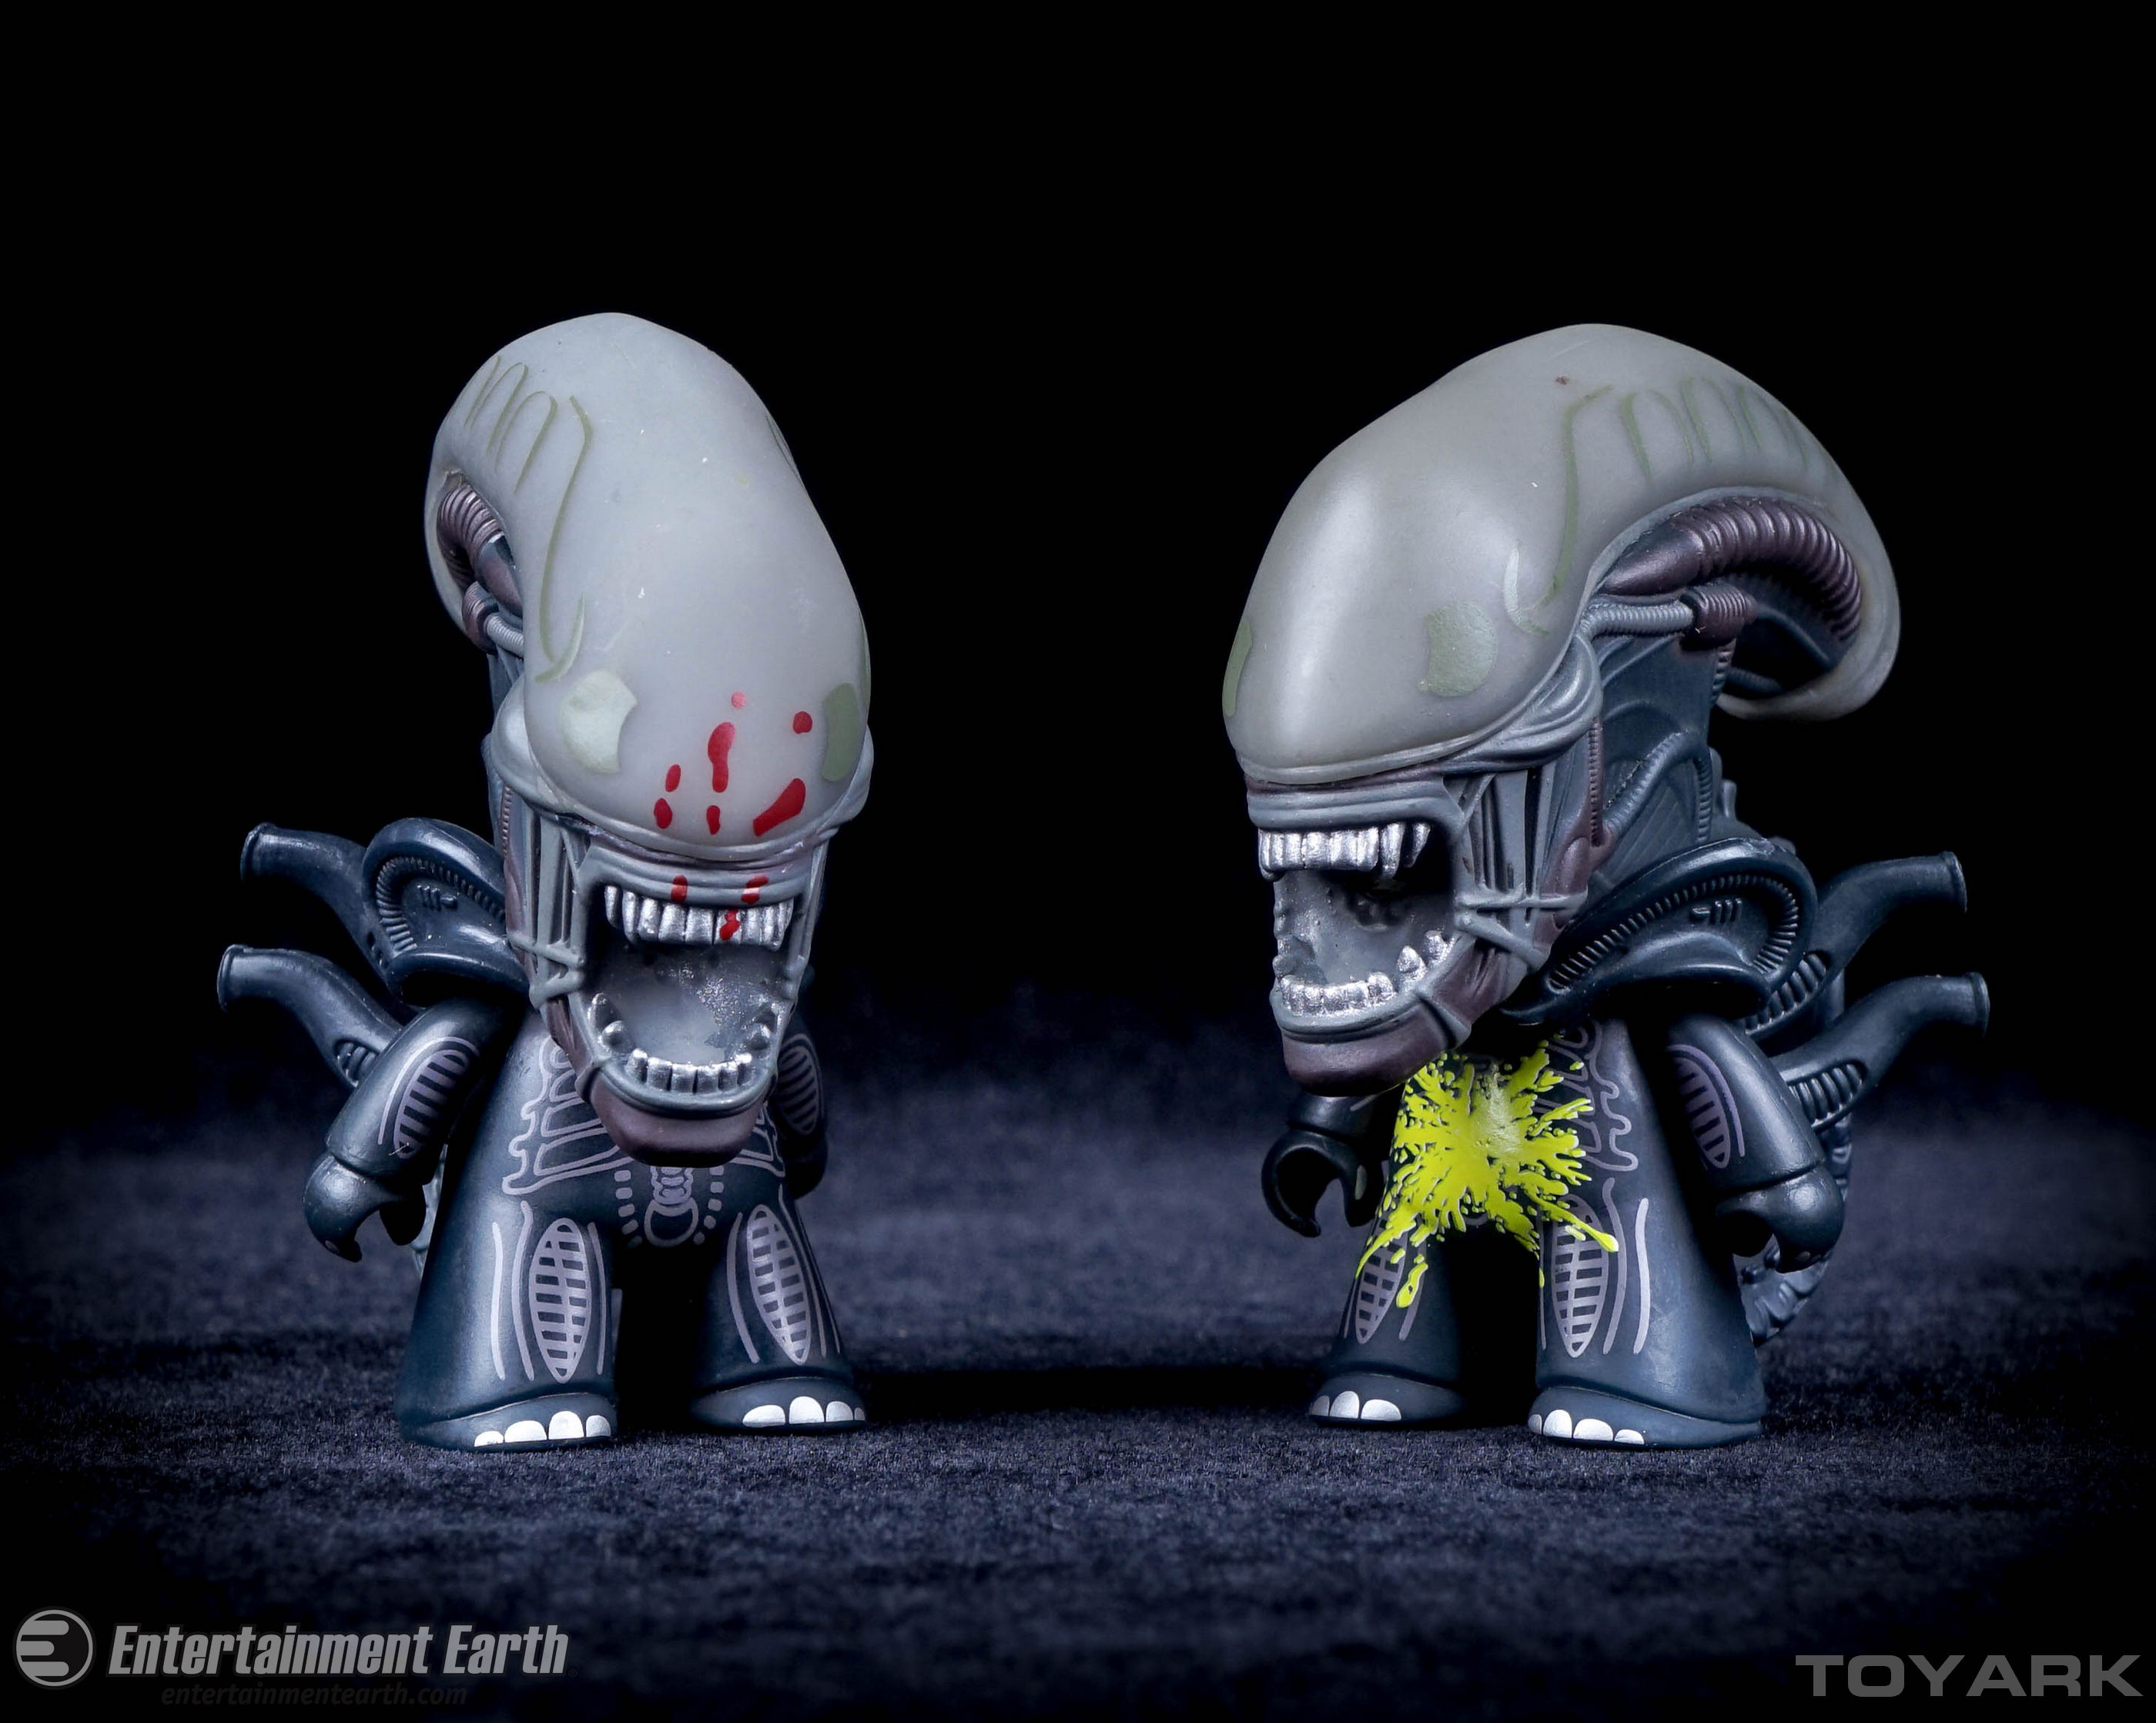 http://news.toyark.com/wp-content/uploads/sites/4/2016/02/Titan-Alien-Vinyl-Figures-002.jpg